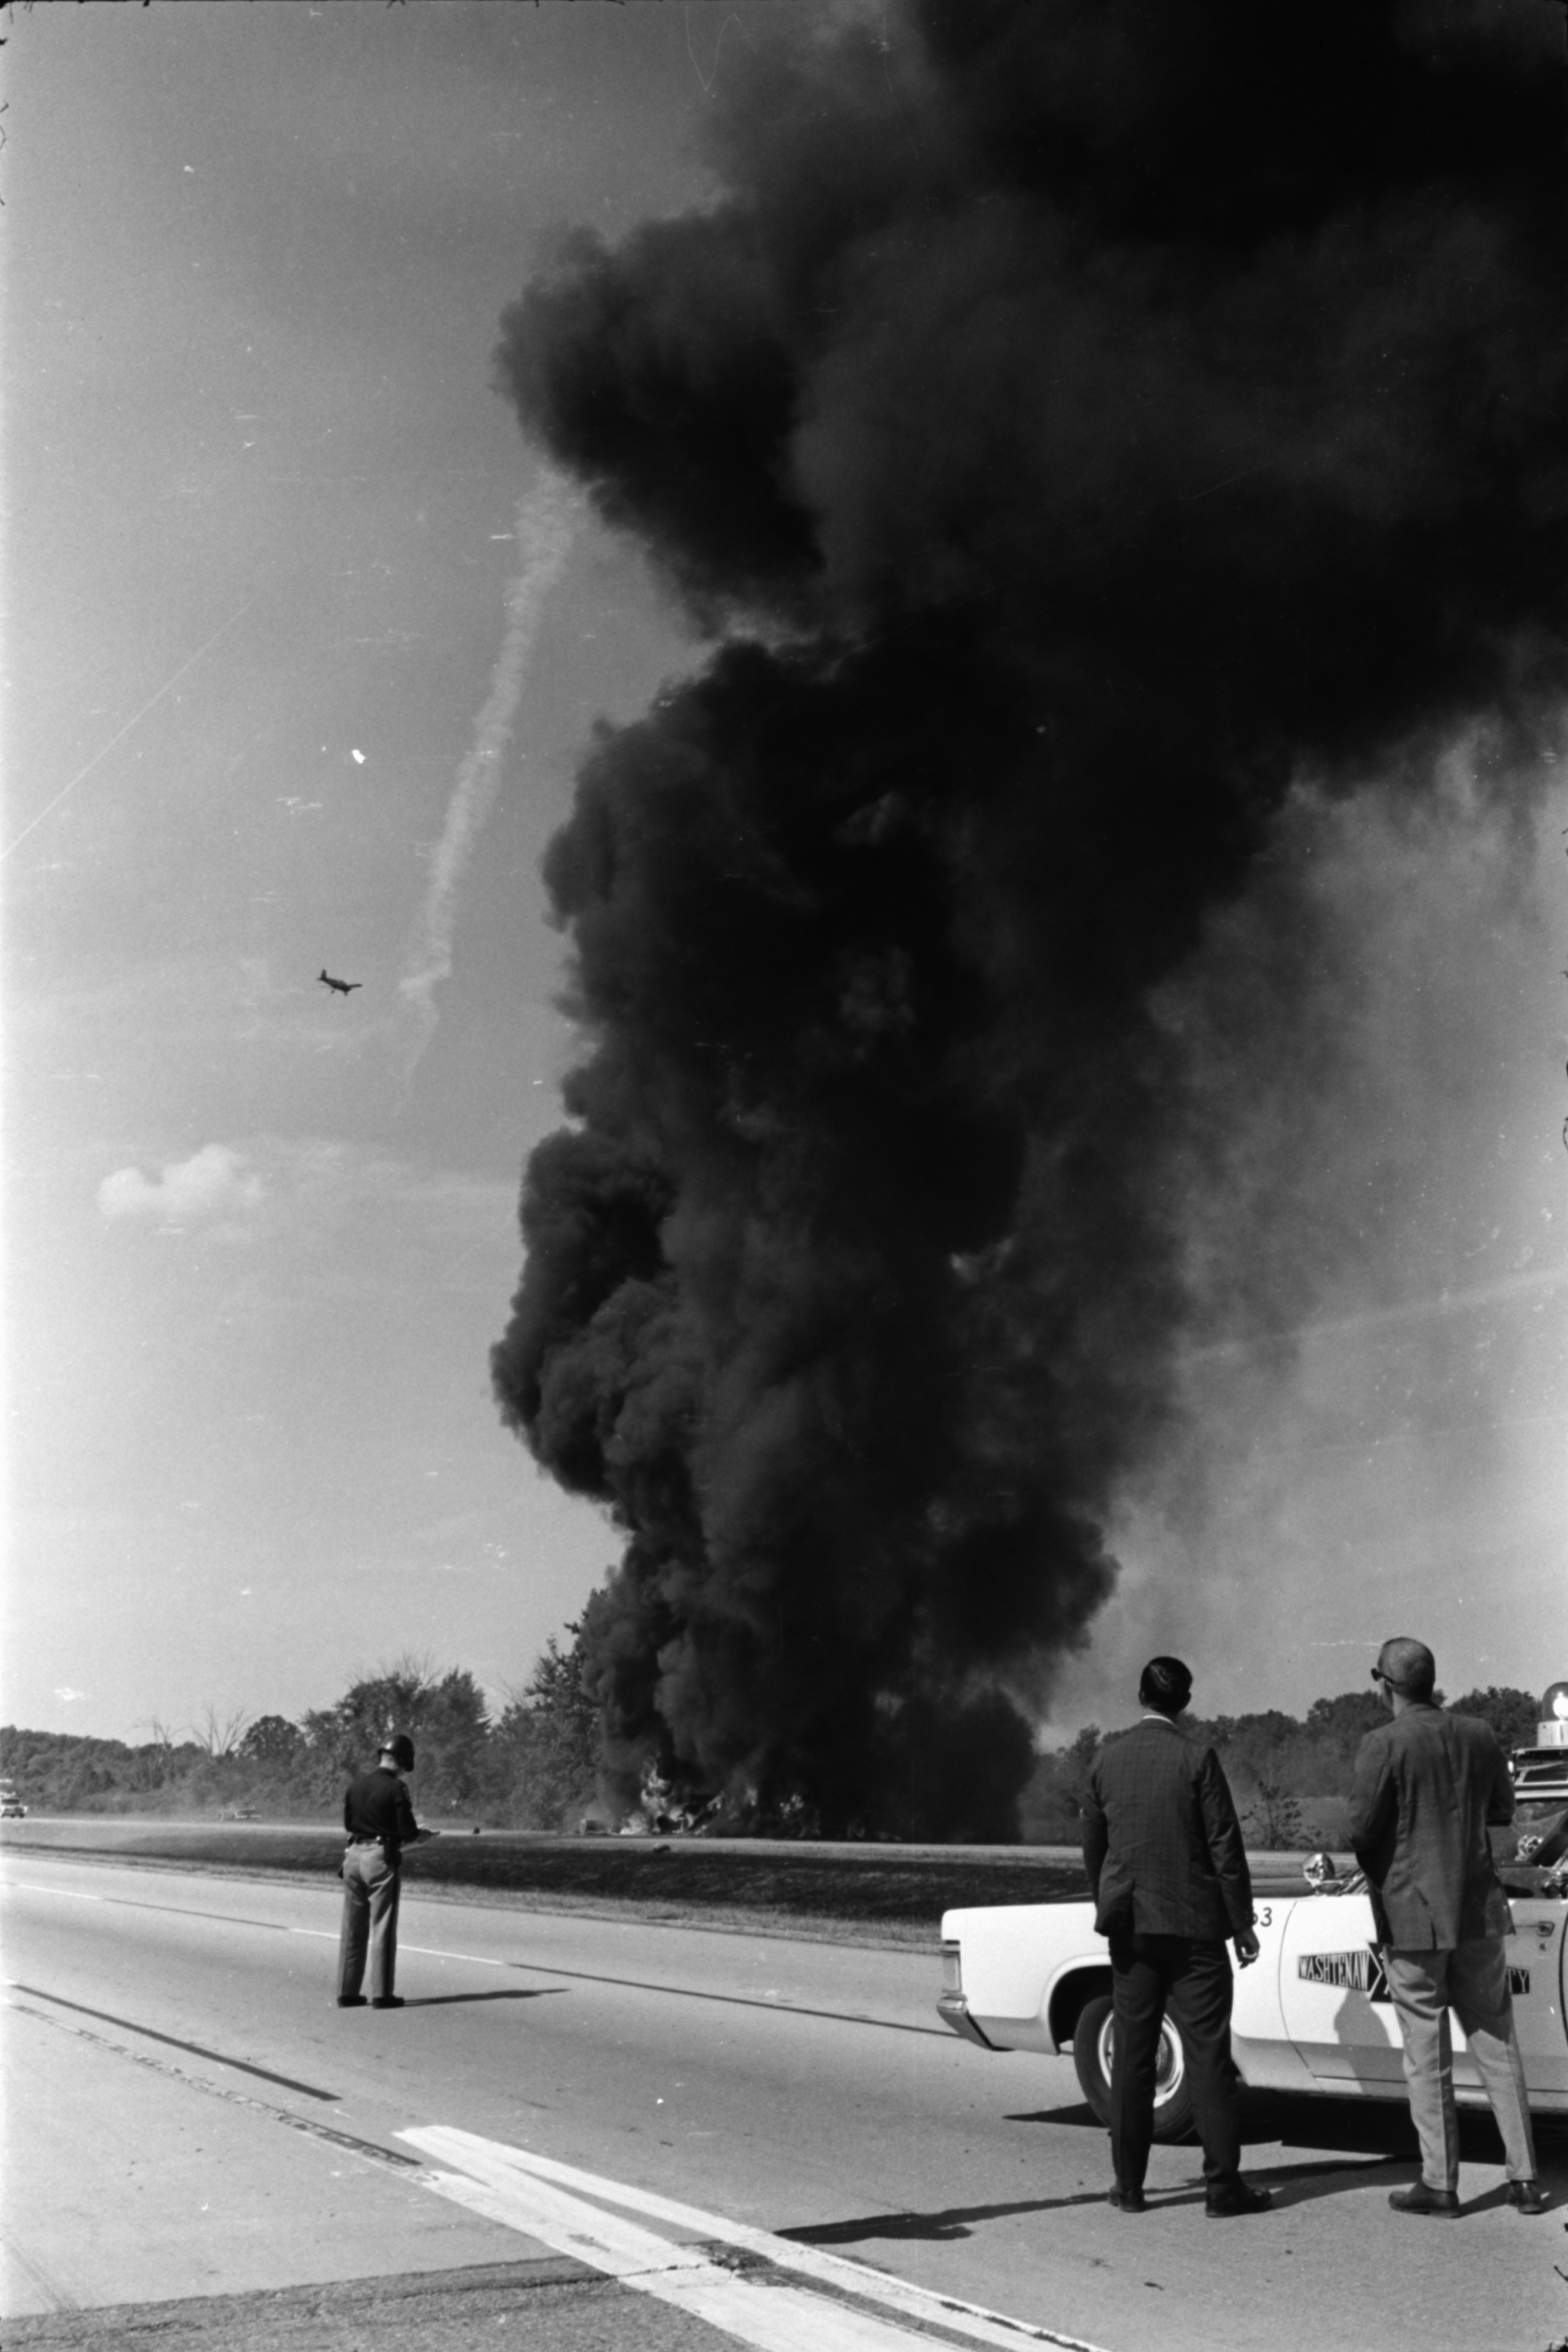 Truck Blows Up on I-94, September 1969 image